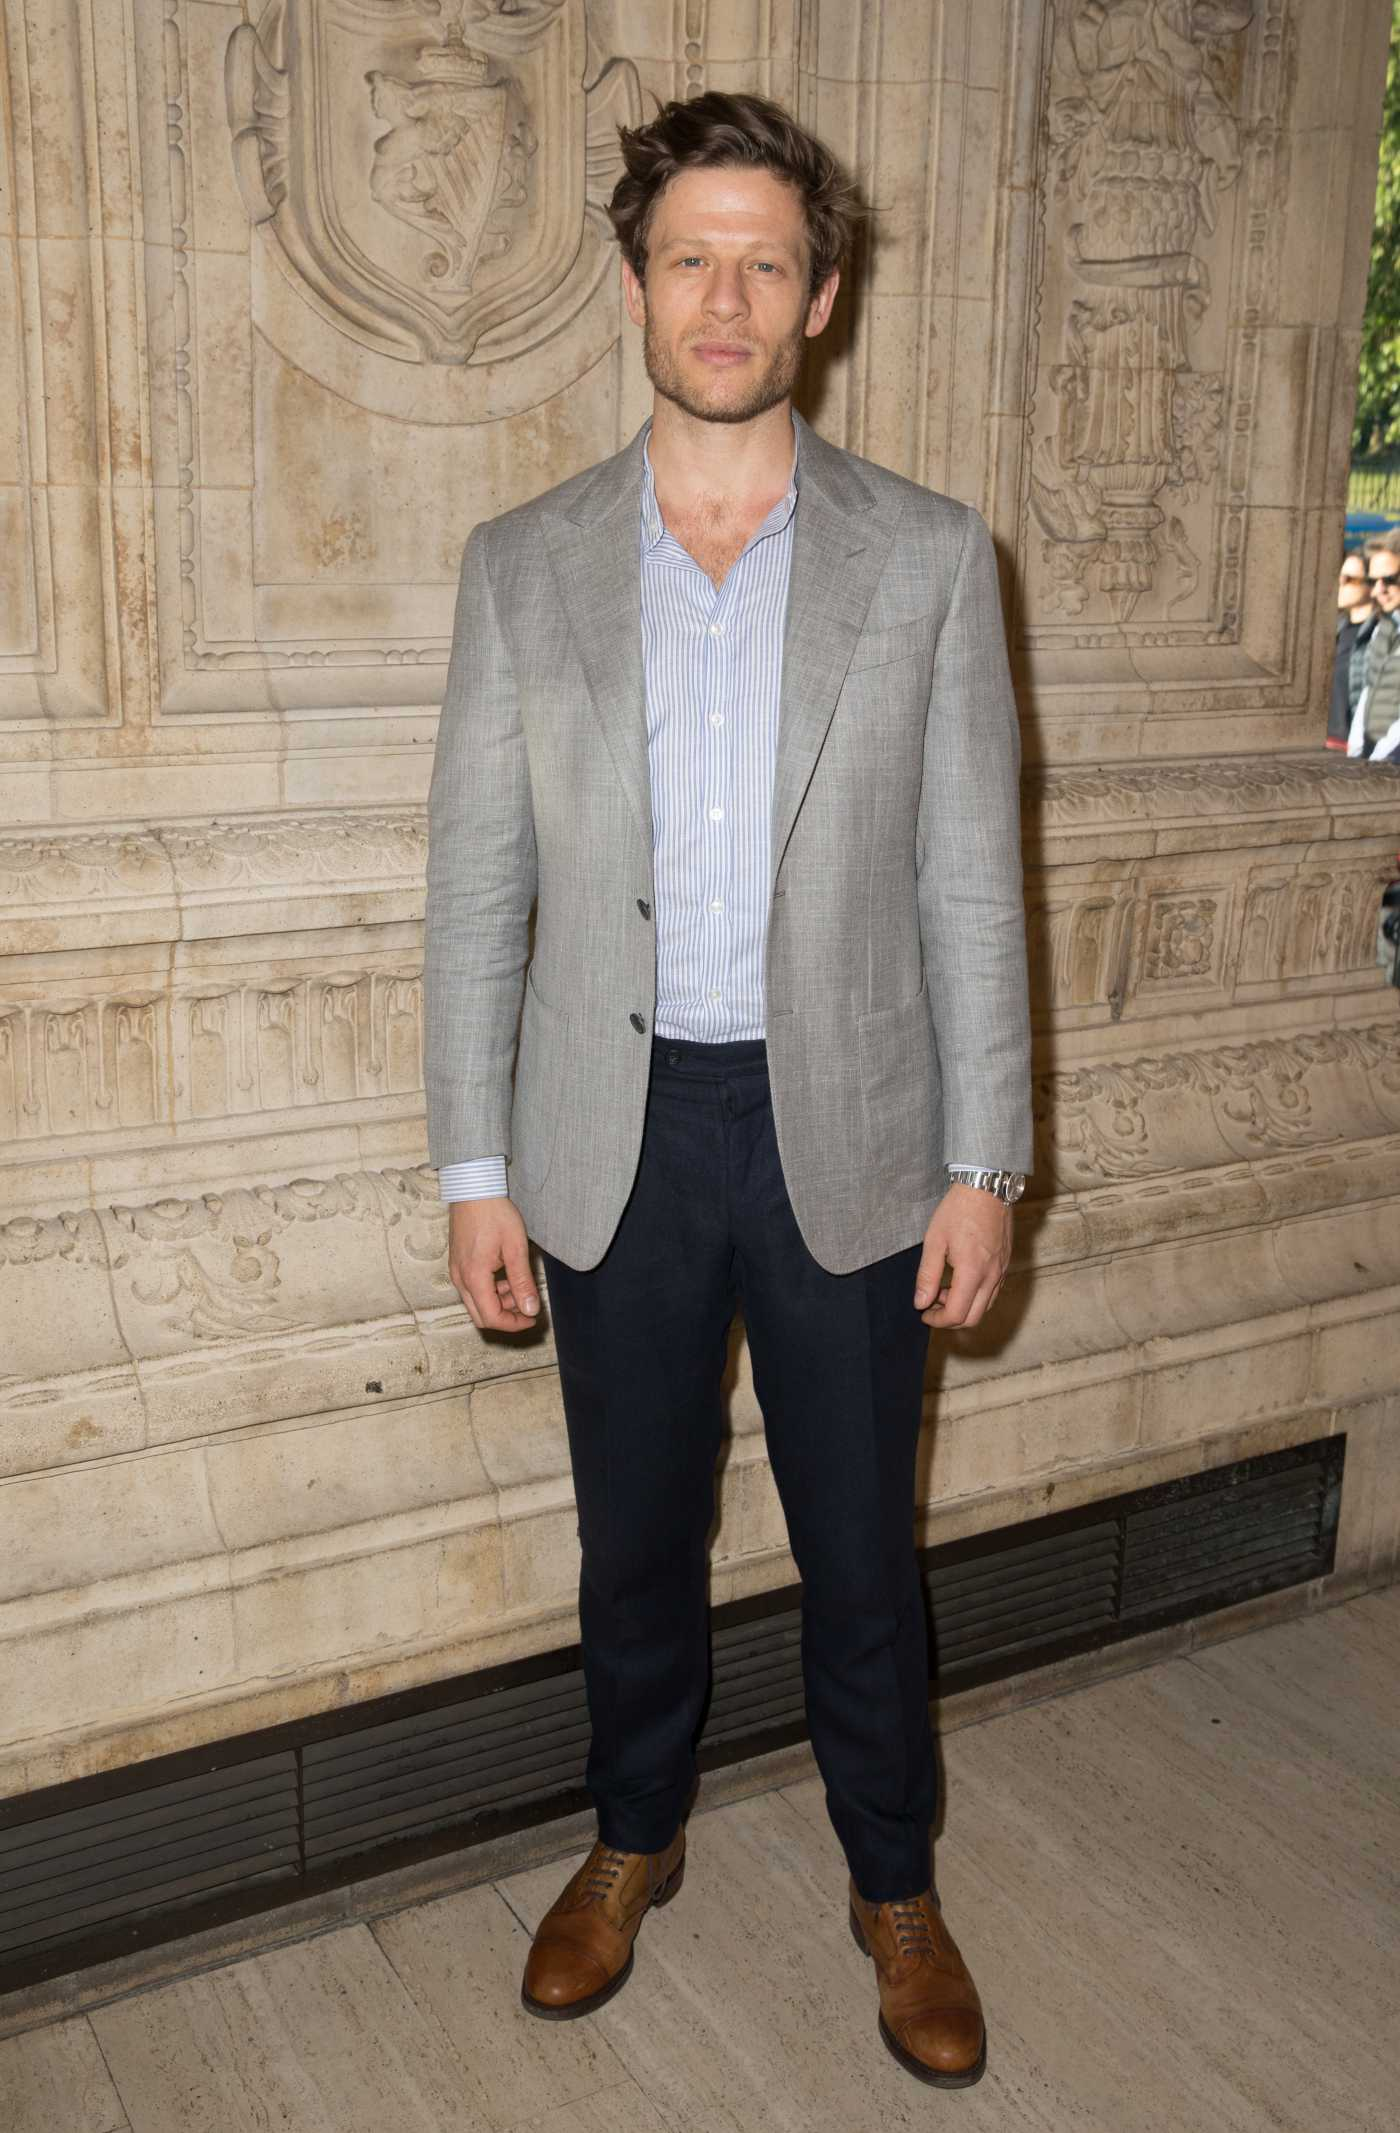 James Norton Attends the Opening Night of English National Ballet's Cinderella at the Royal Albert Hall in London 06/06/2019